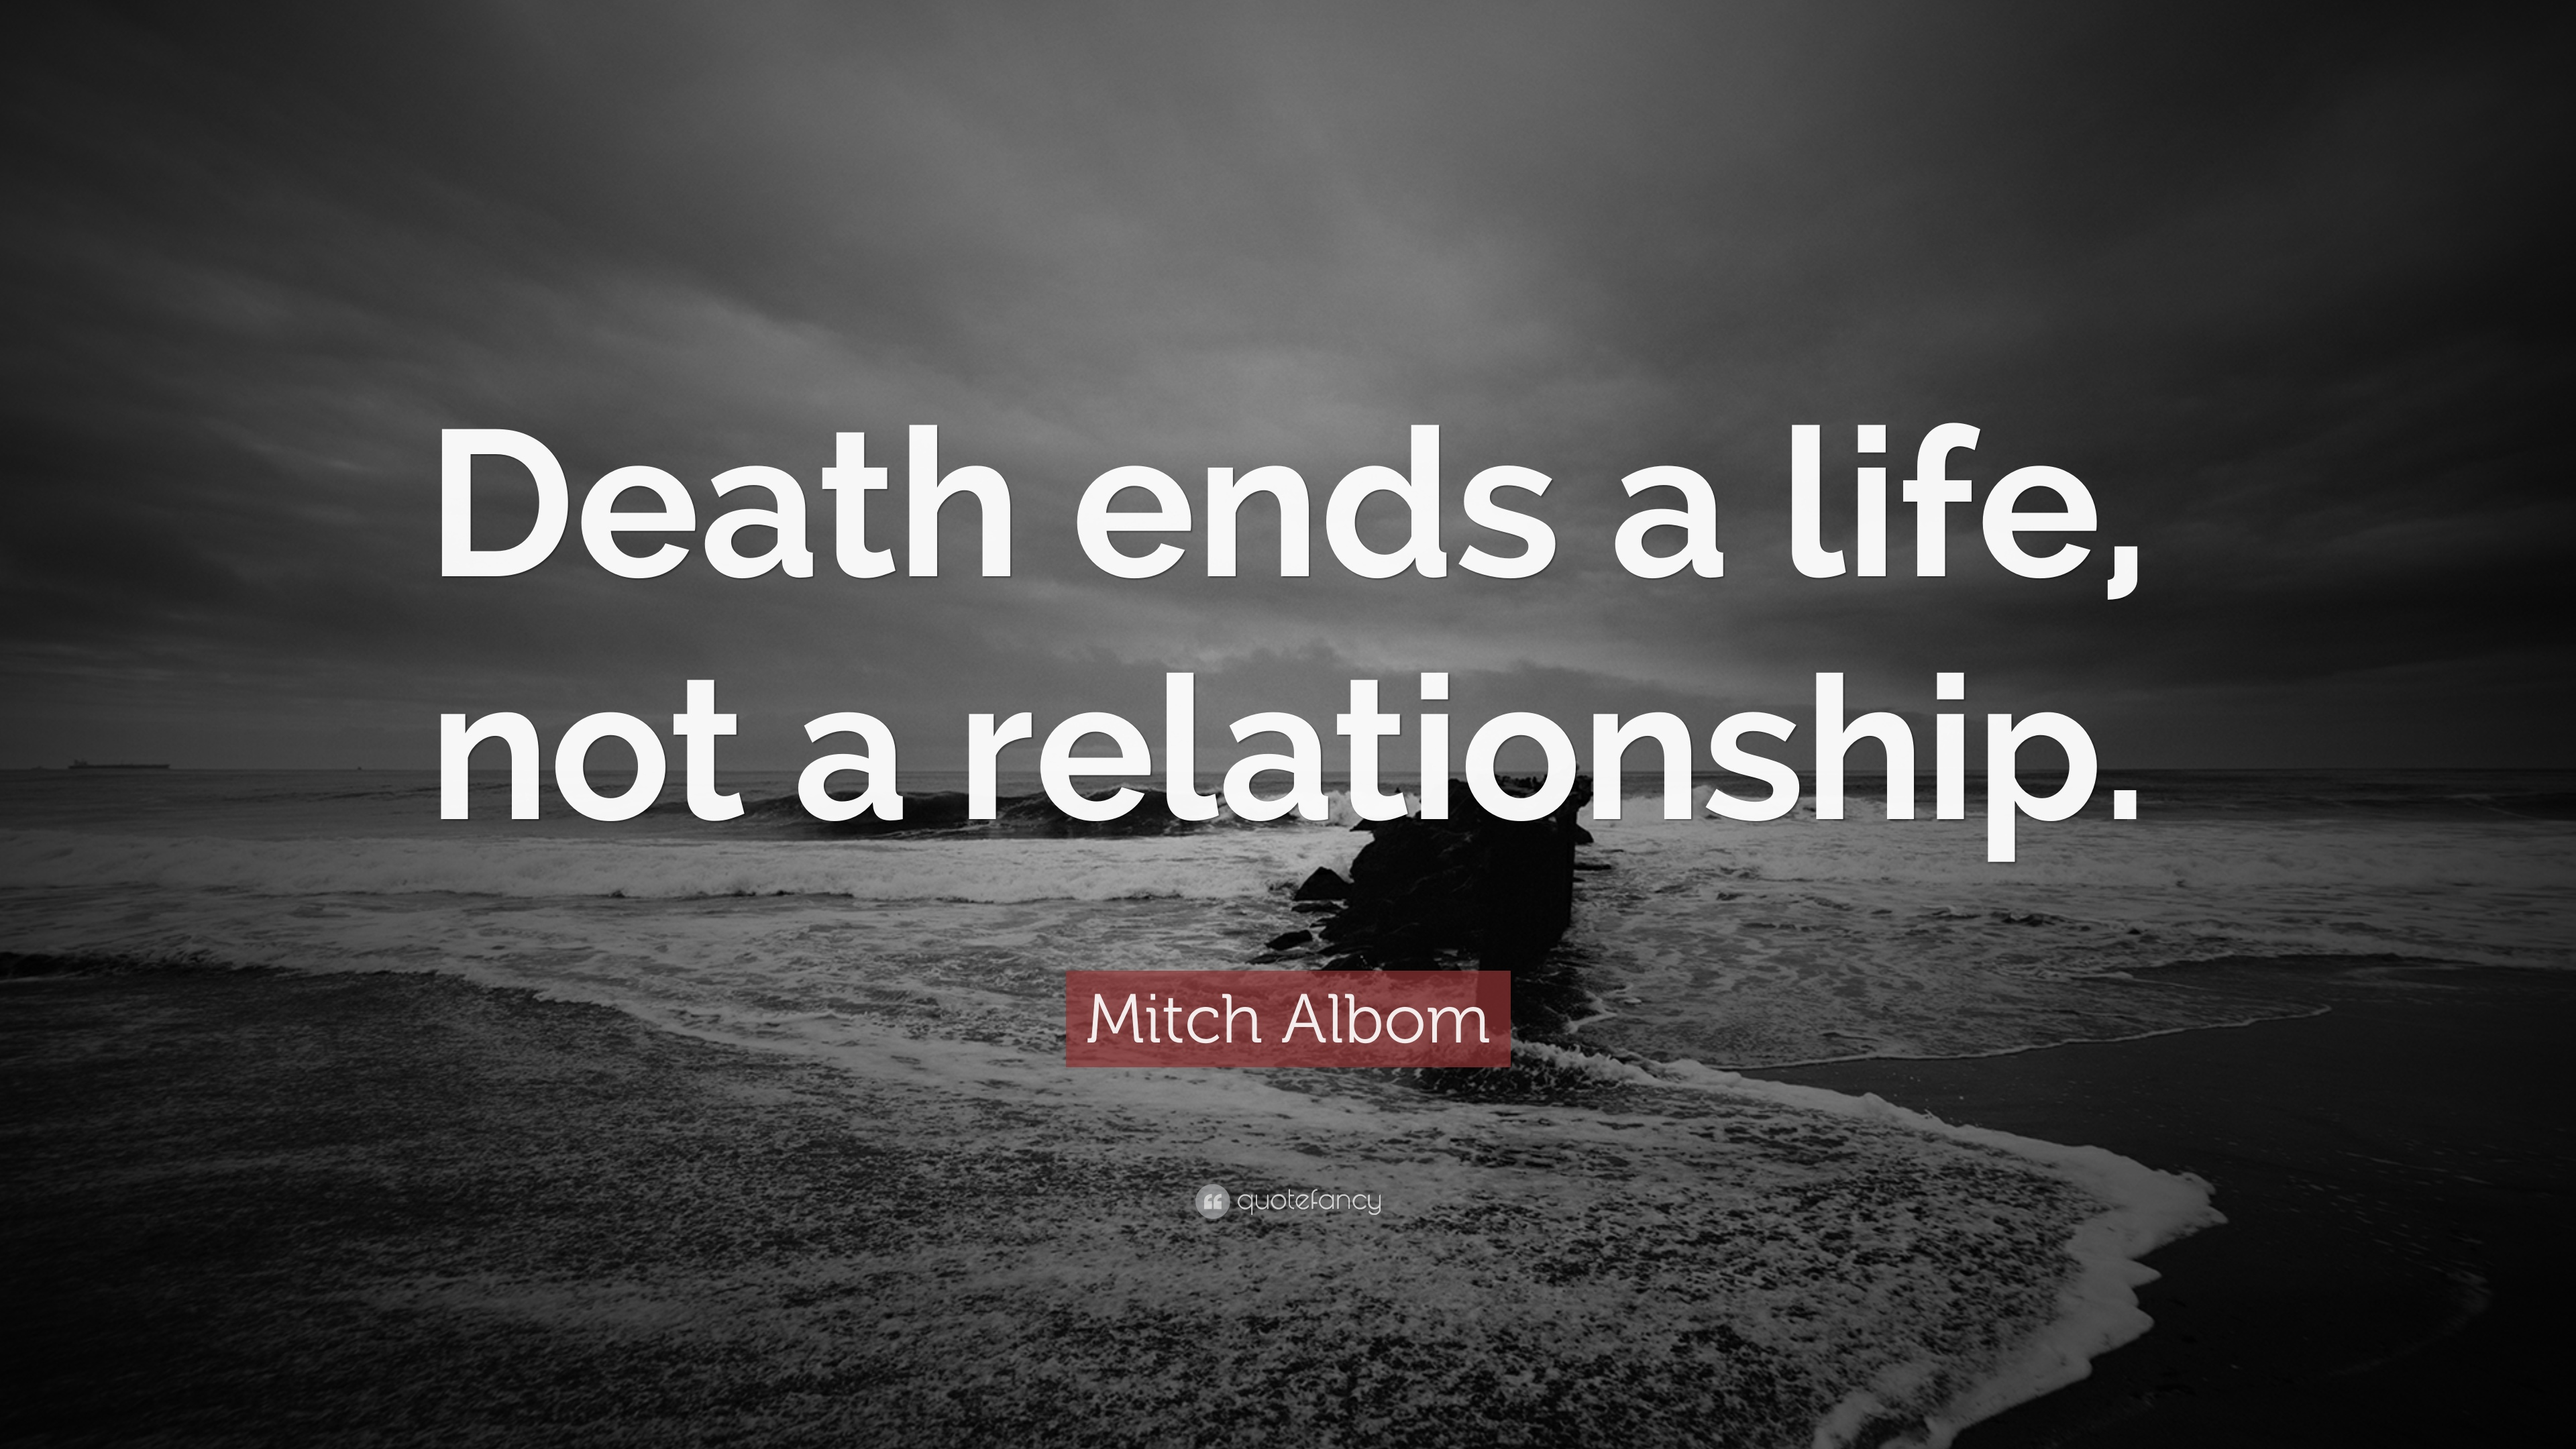 William Shakespeare Love Quotes Wallpaper Mitch Albom Quote Death Ends A Life Not A Relationship